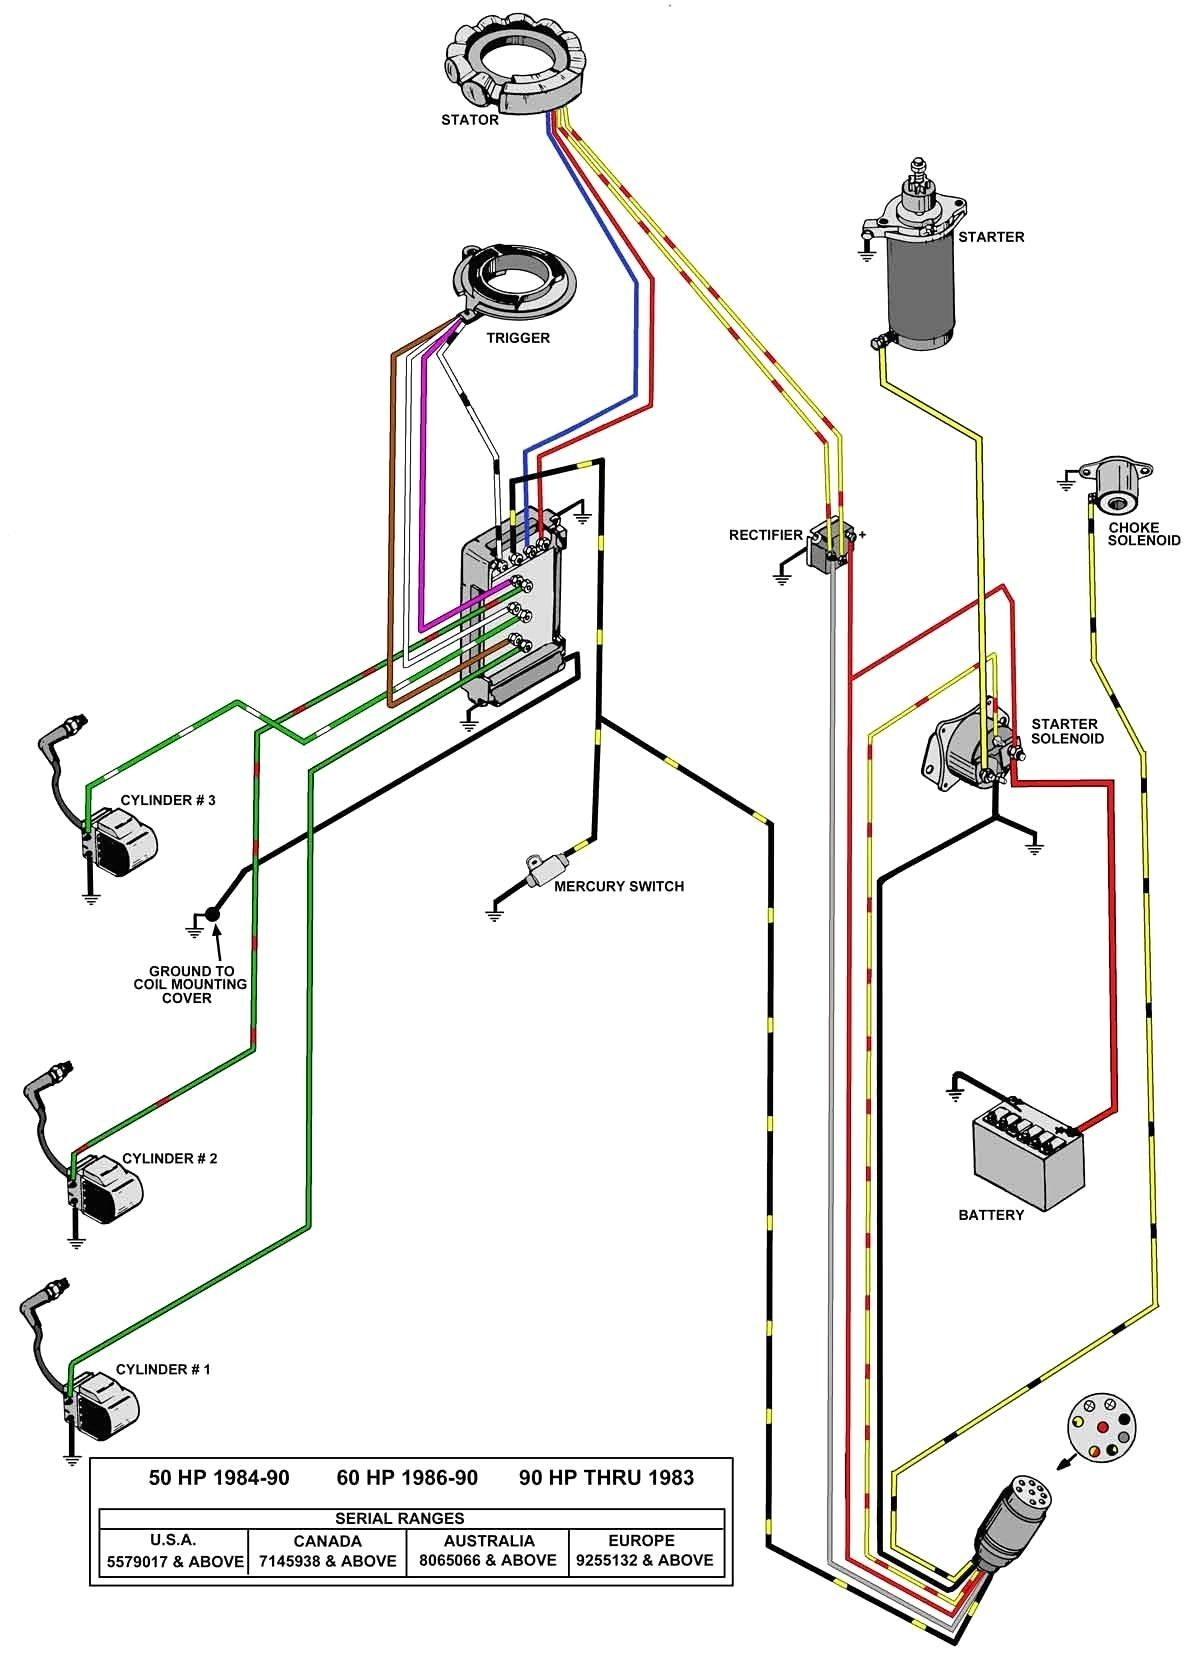 Wiring Diagram Mercury Ignition Switch 8608 Wiring Diagram for Mercury Outboard Of Wiring Diagram Mercury Ignition Switch